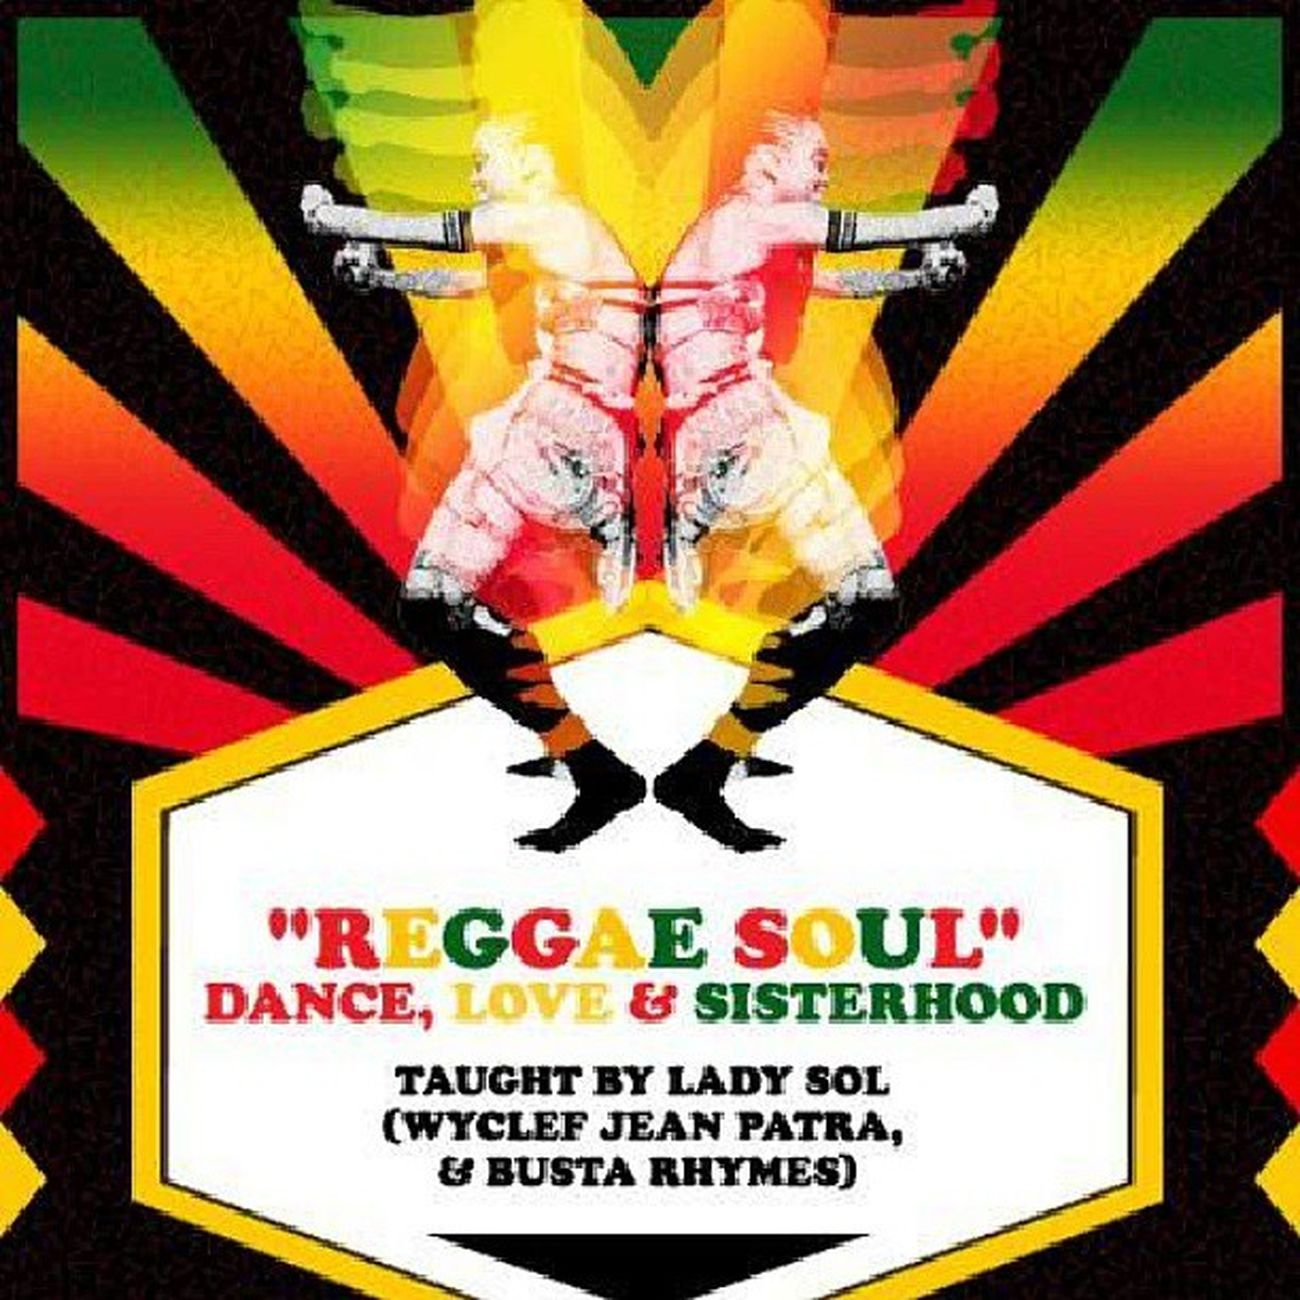 RRRRRRREGGAE SOUL DANCE WORKSHOP WITH LADY SOL EVERY SATURDAY 1-2 @ the American Rythm Center, Studio C, 410 S Michigan Ave Chicago, 3rd floor, arcchicago.org, LADIES ONLY, 16 and up Thisischicago LadiesONLY  Reggae Dancehall ladysol wineyobody Chicago dancers Americanrythymncenter irie